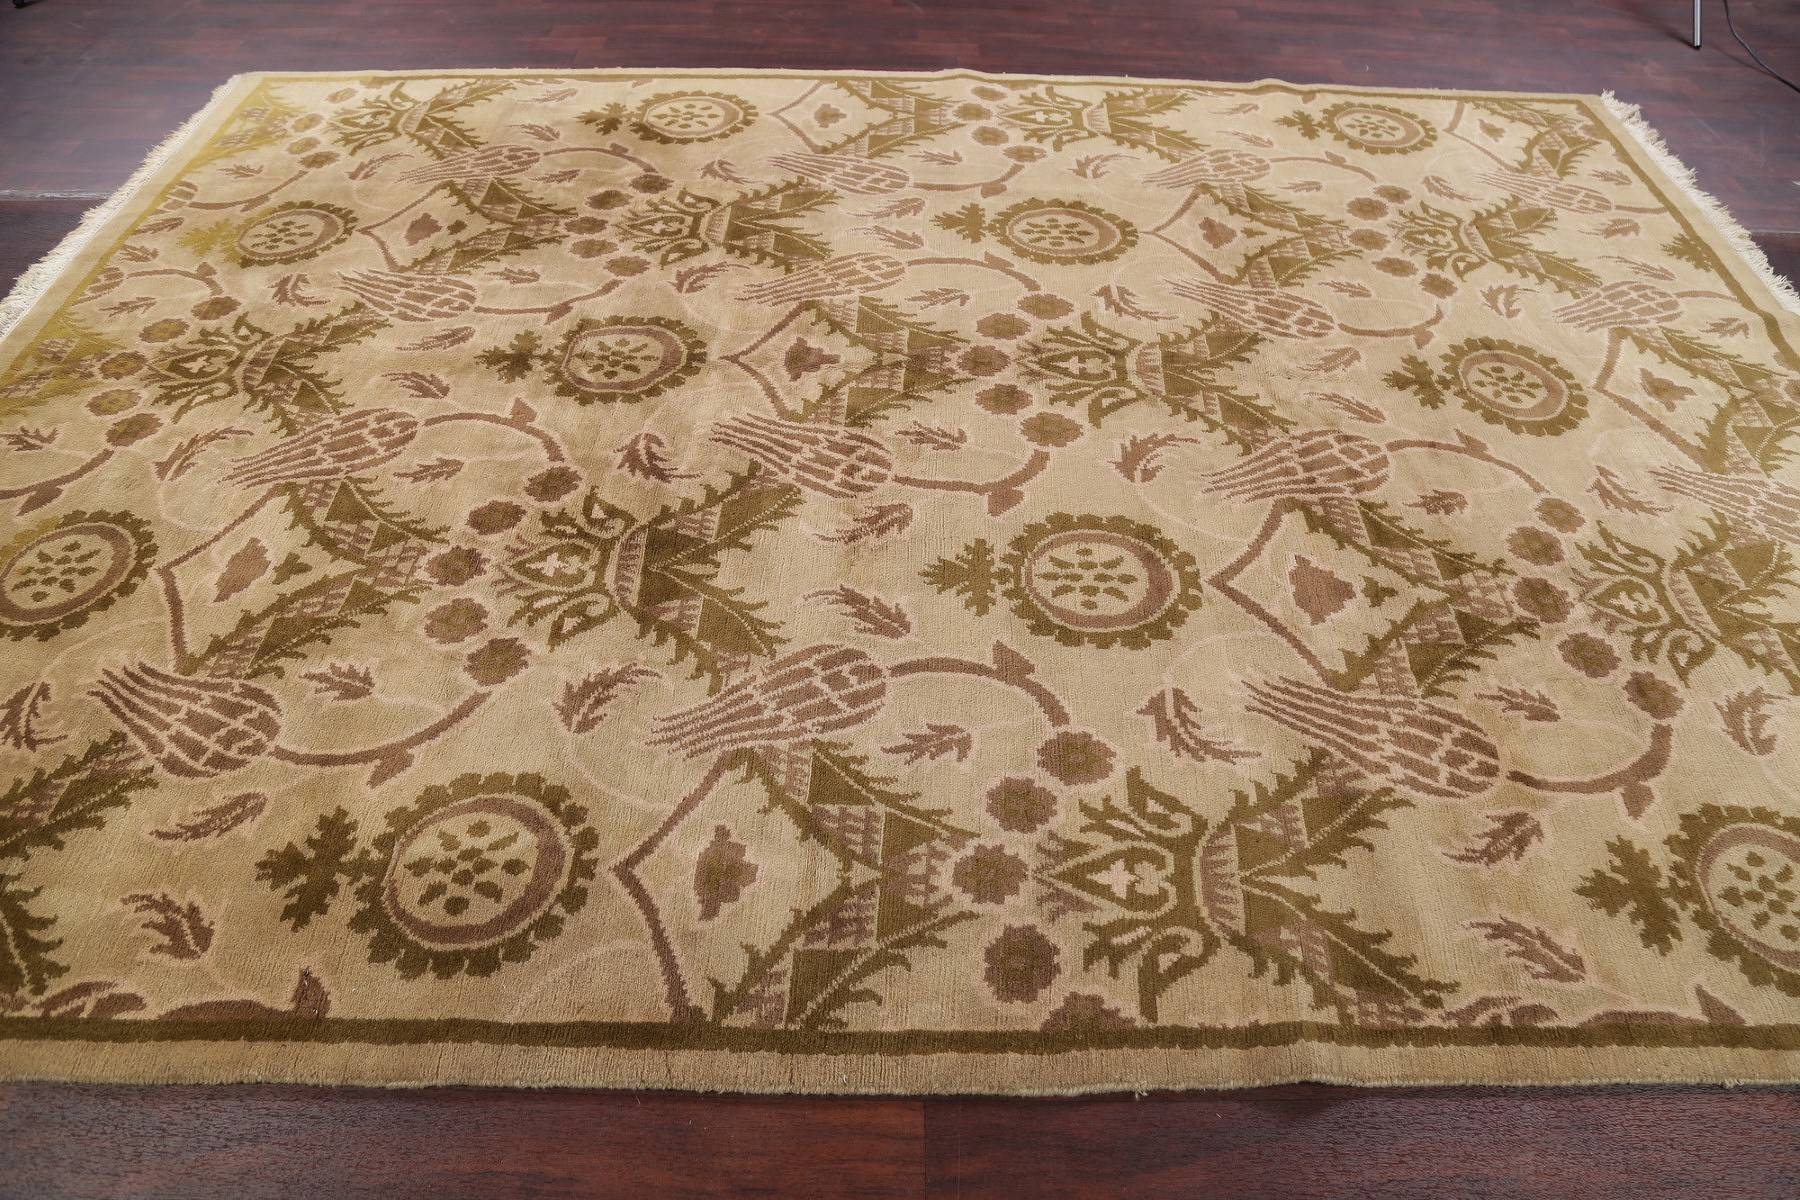 Art & Craft Beige Nepal Indian Oriental Hand-Knotted Area Rug Wool 9x12